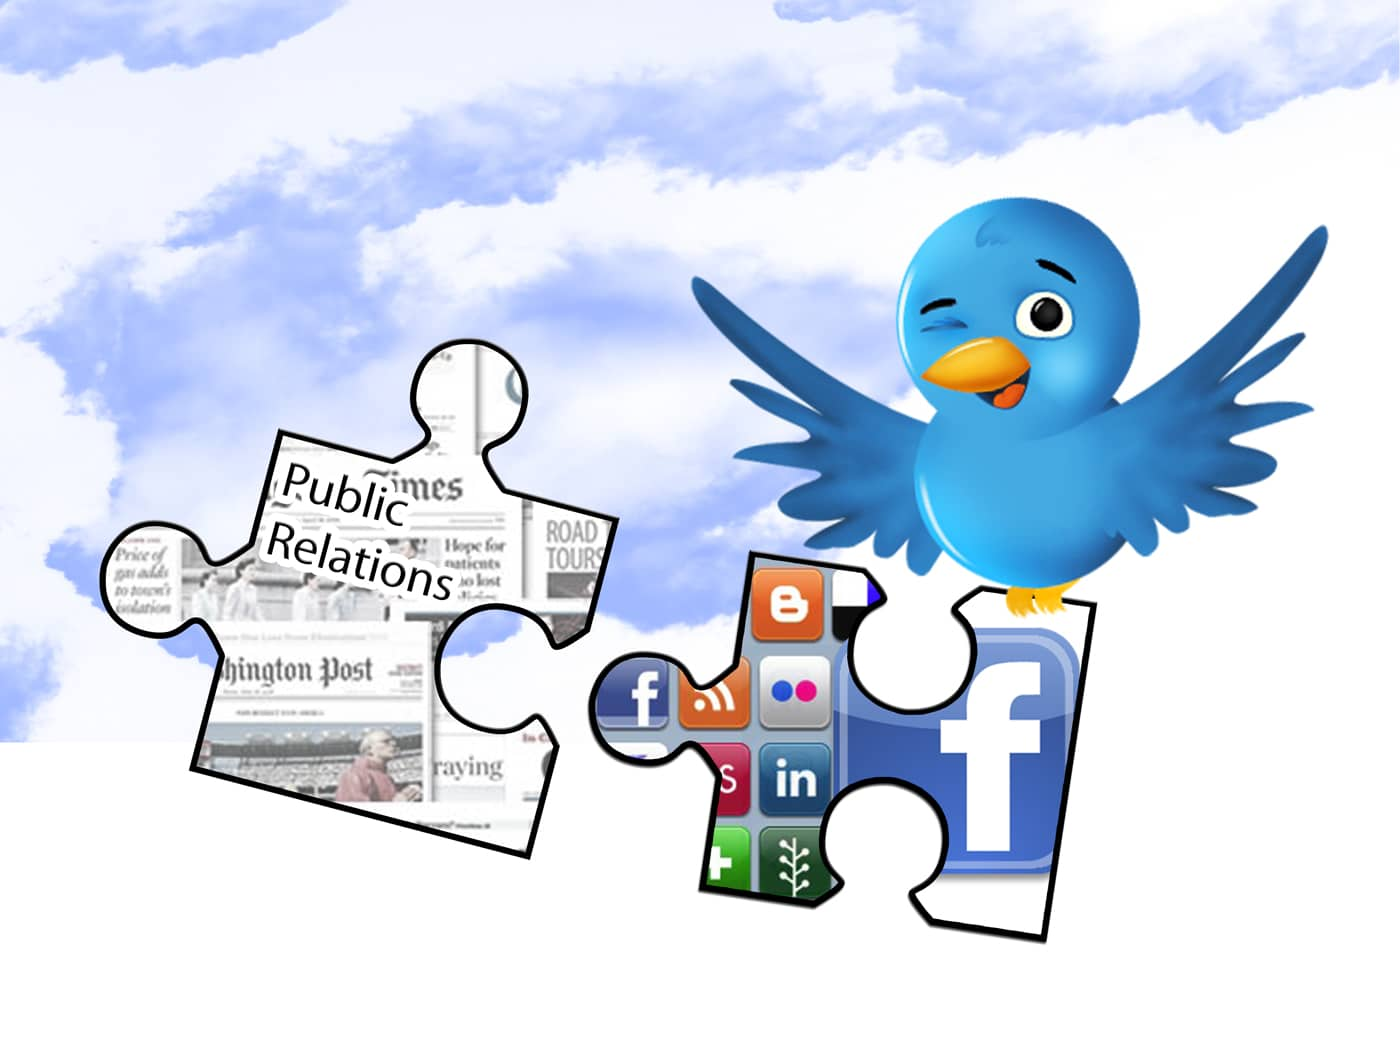 5 Ways Social Media Can Dominate A Trade Show